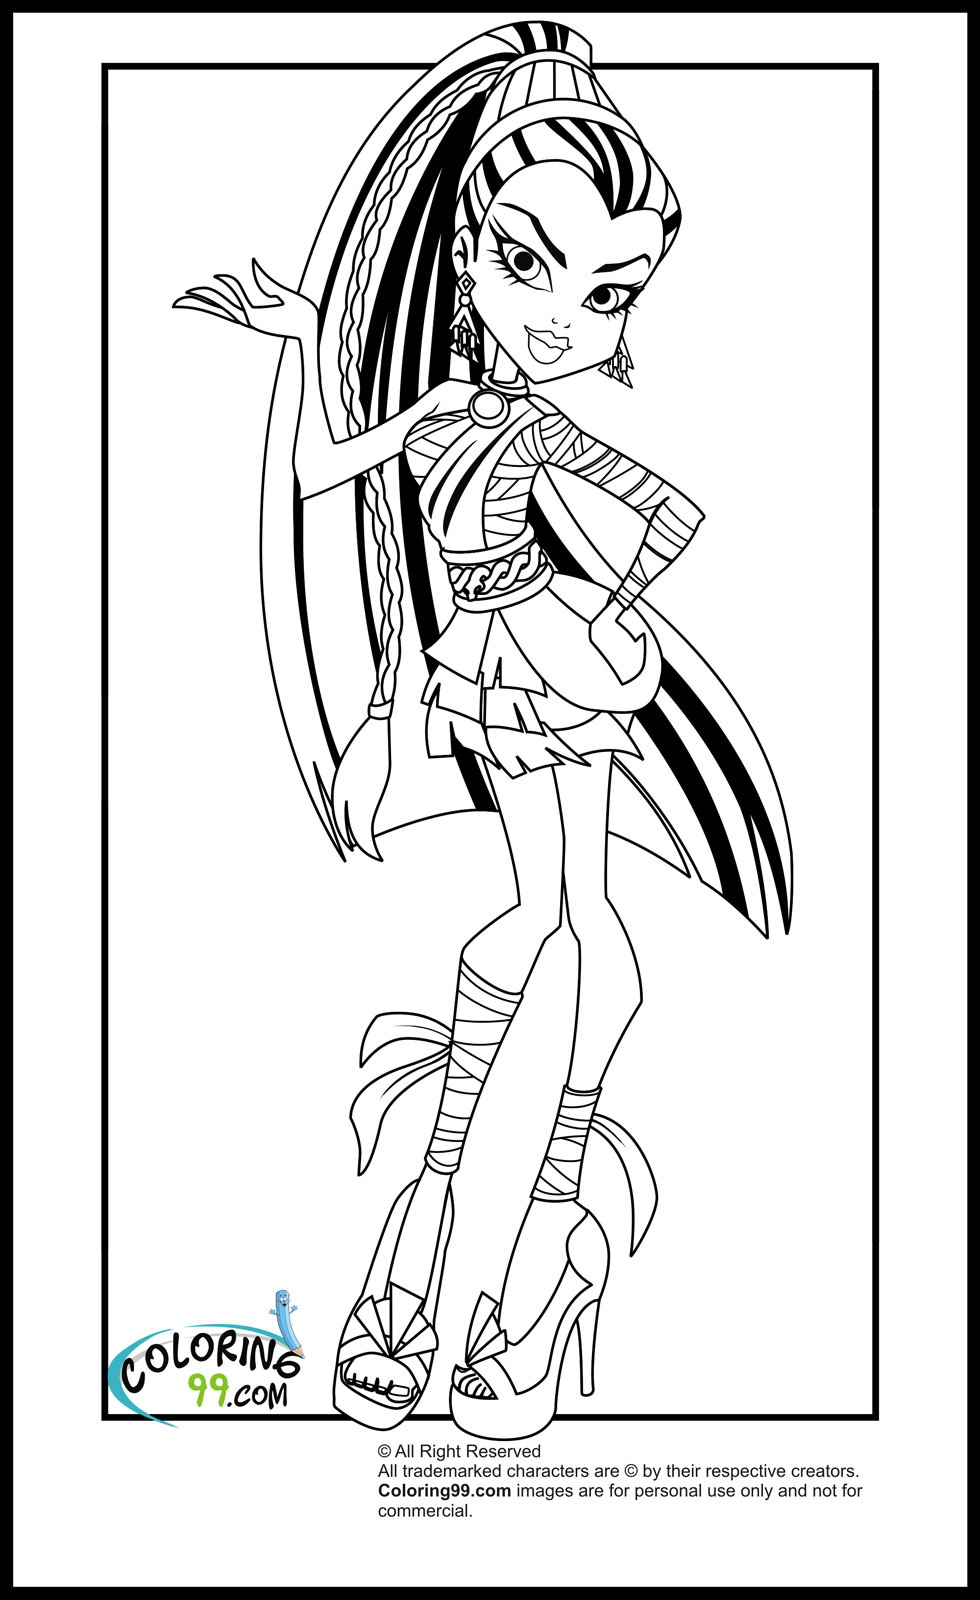 printable monster high coloring pages coloring pages monster high coloring pages free and printable monster printable pages coloring high